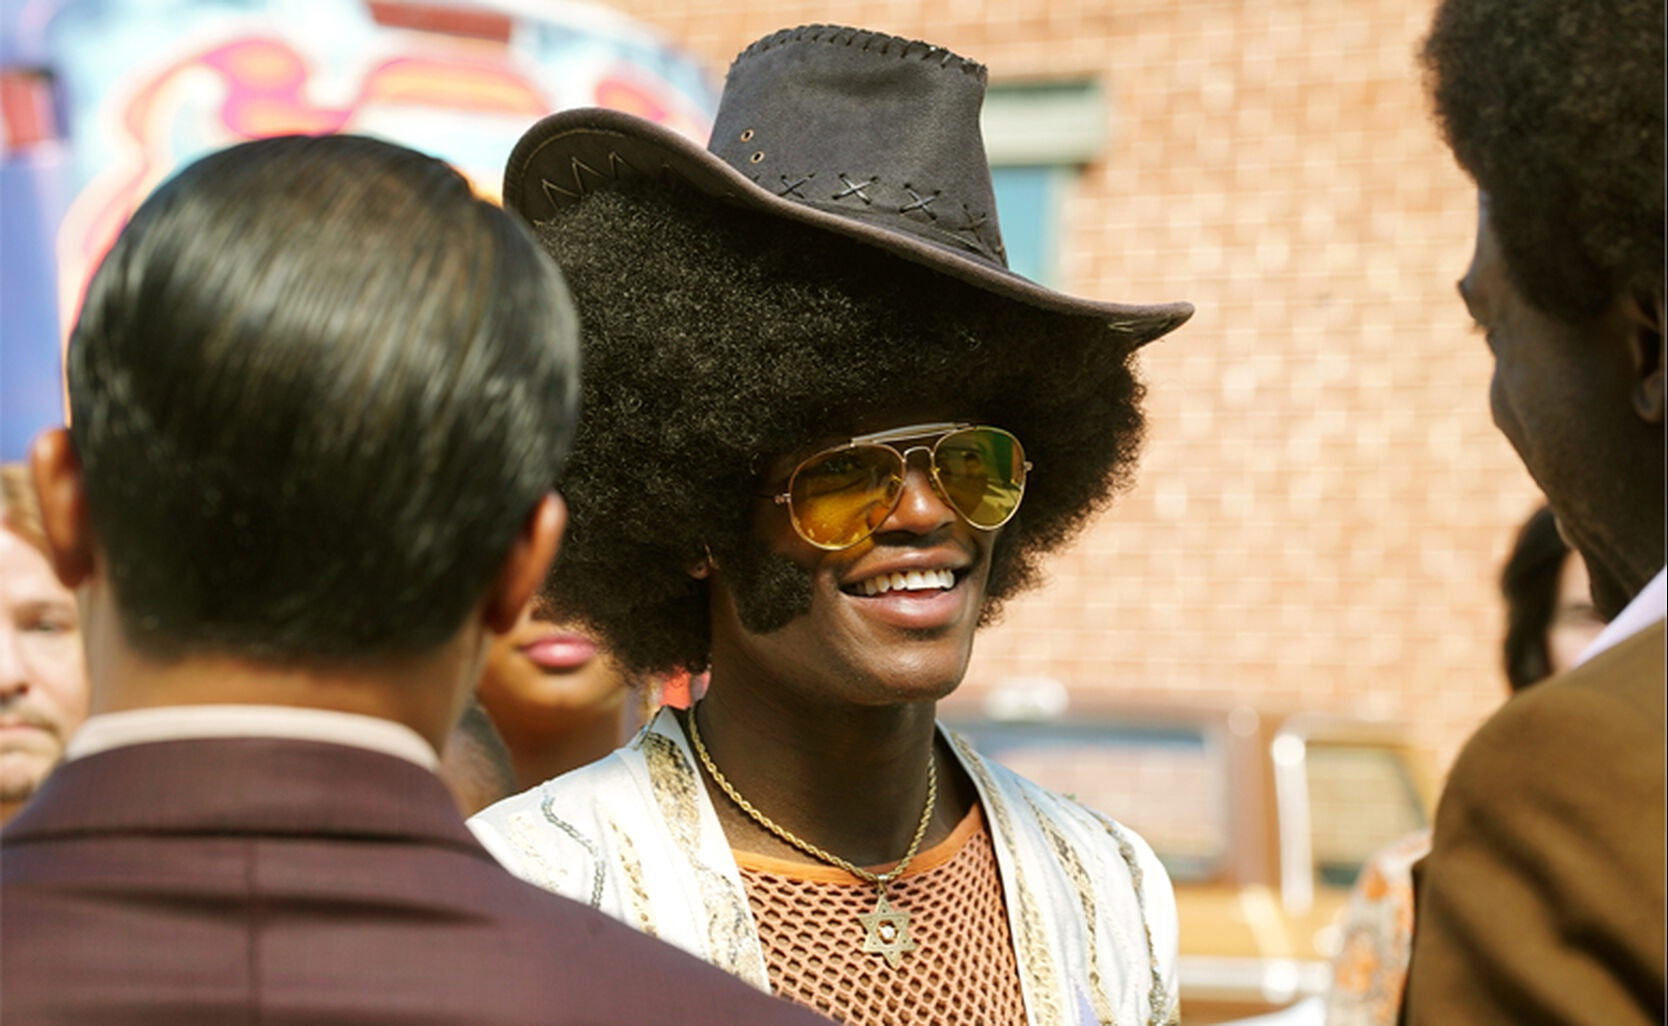 """l-r: Jason Dirden as Gerald Aims; D.C. Young Fly as Sly Stone; and Sinqua Walls as Don Cornelius in """"American Soul"""""""